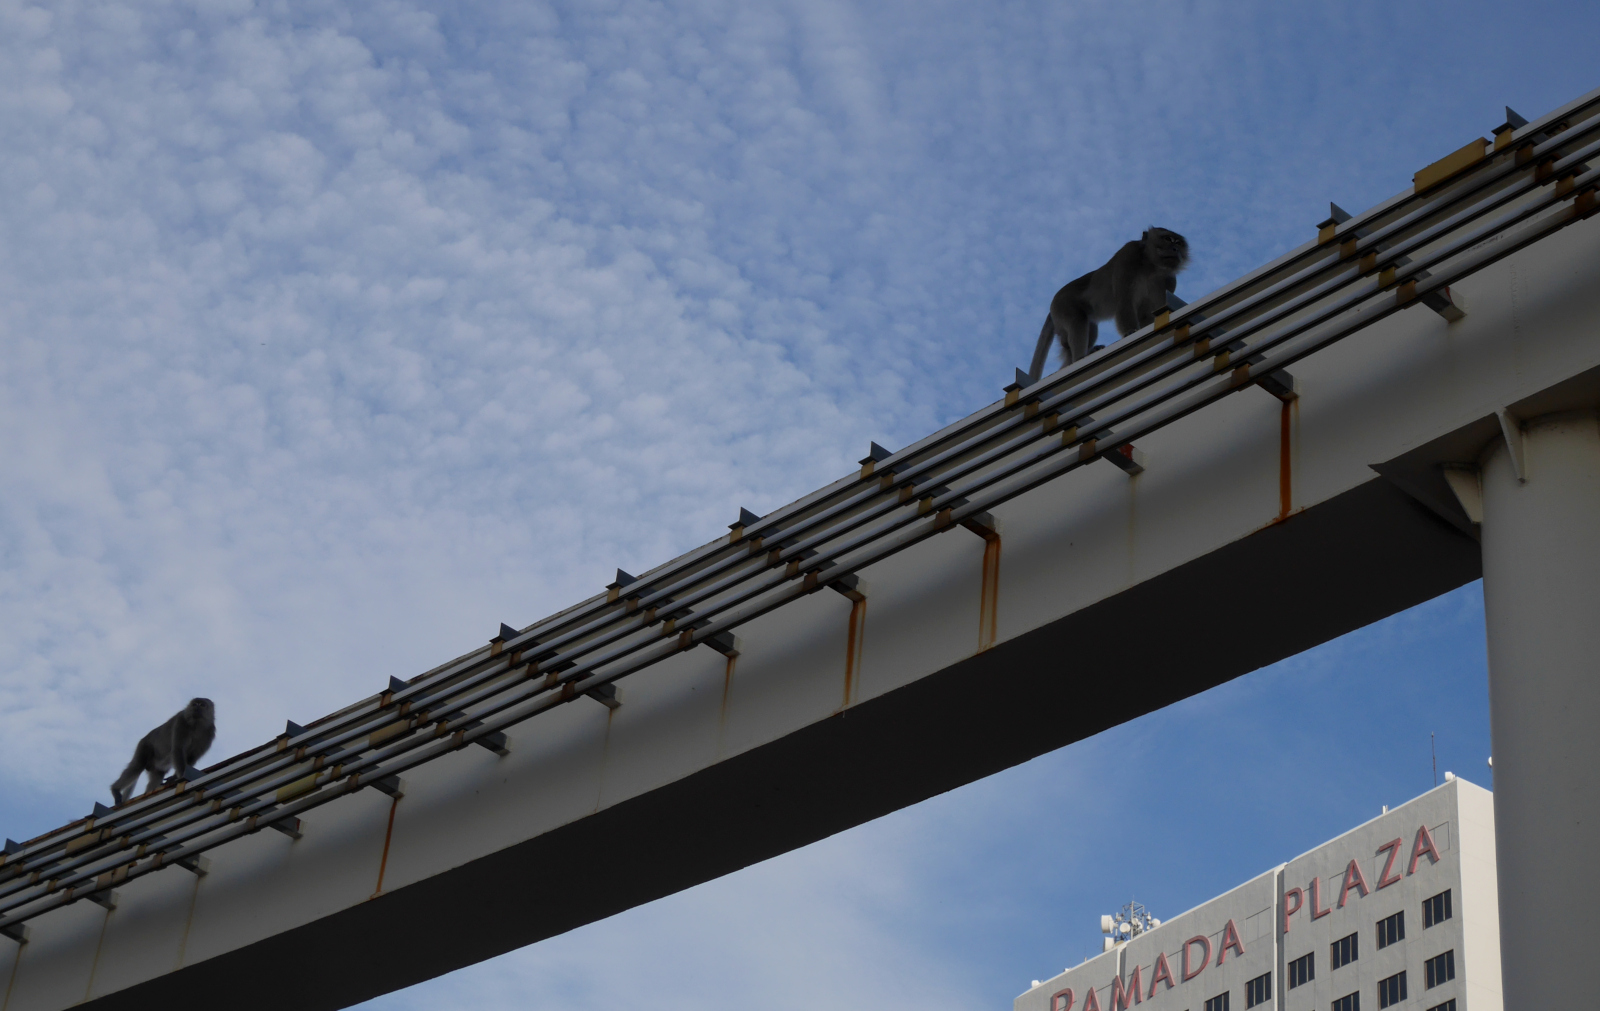 Long-tailed macaques (Macaca fascicularis) stalking along the elevated trackway of the monorail.